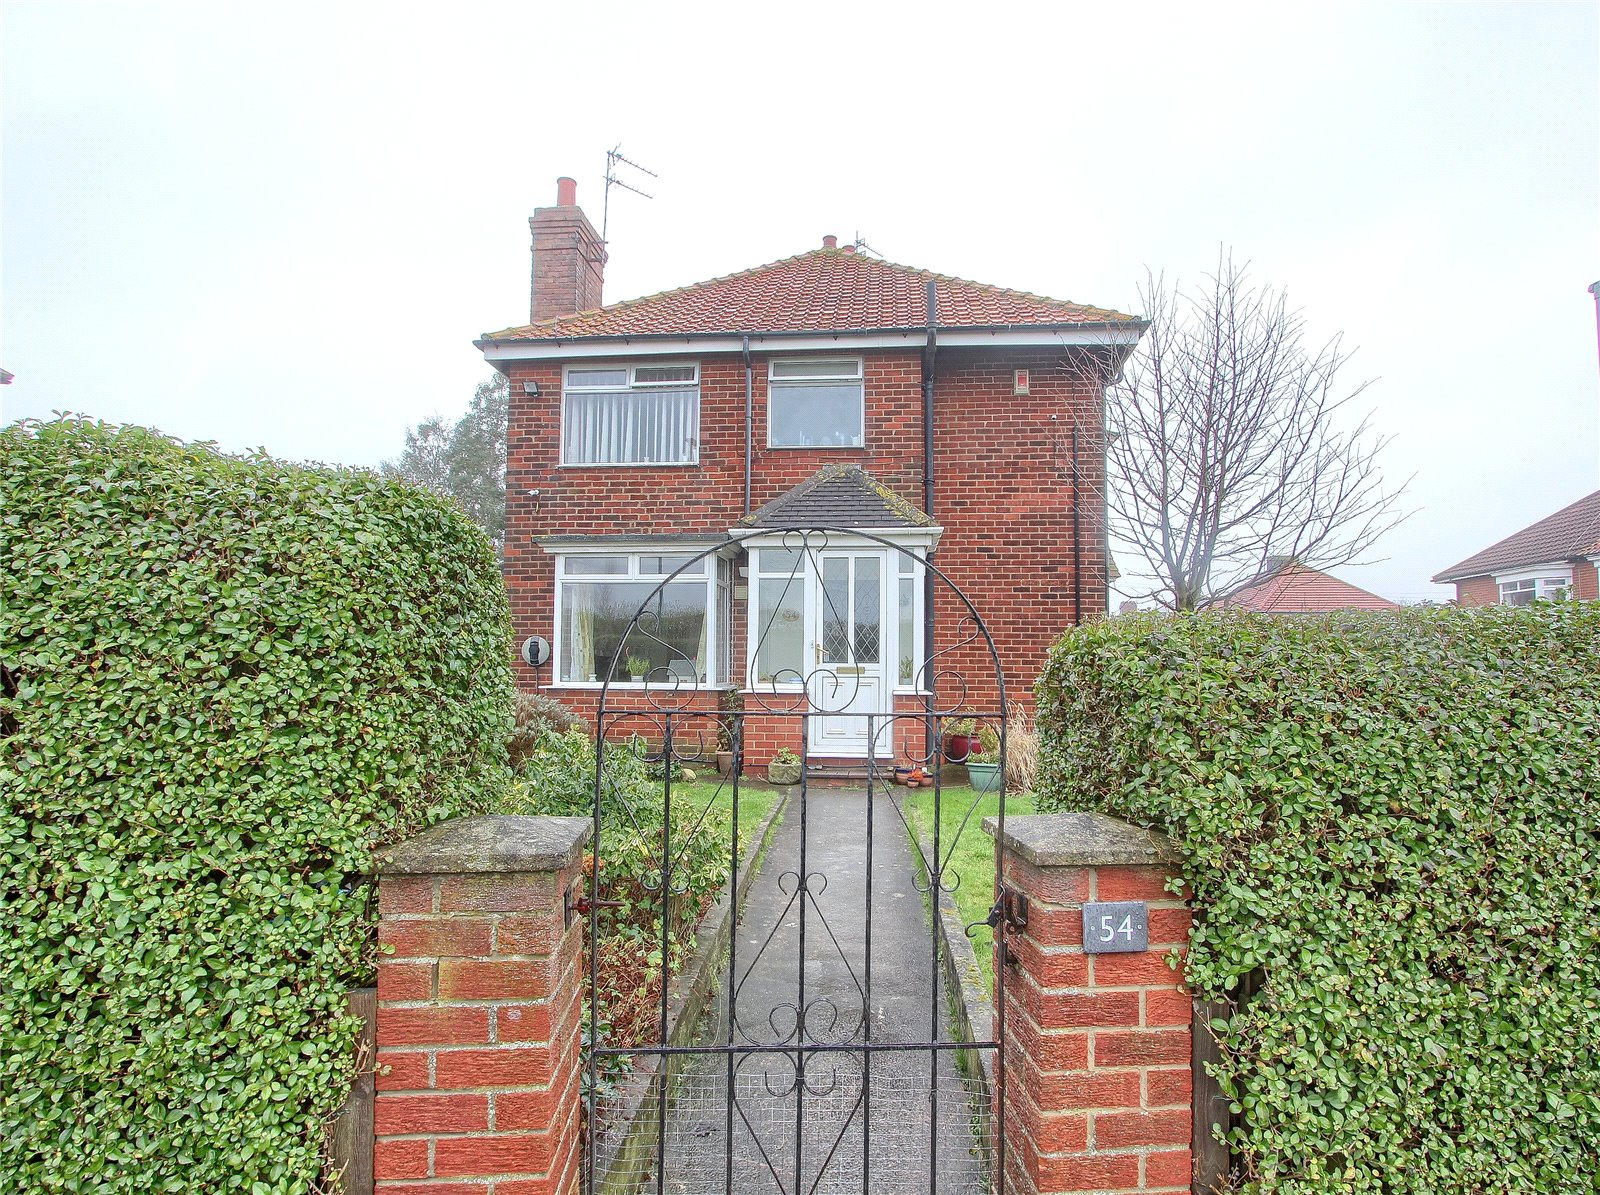 3 bed house for sale in Windy Hill Lane, Marske-by-the-Sea 1